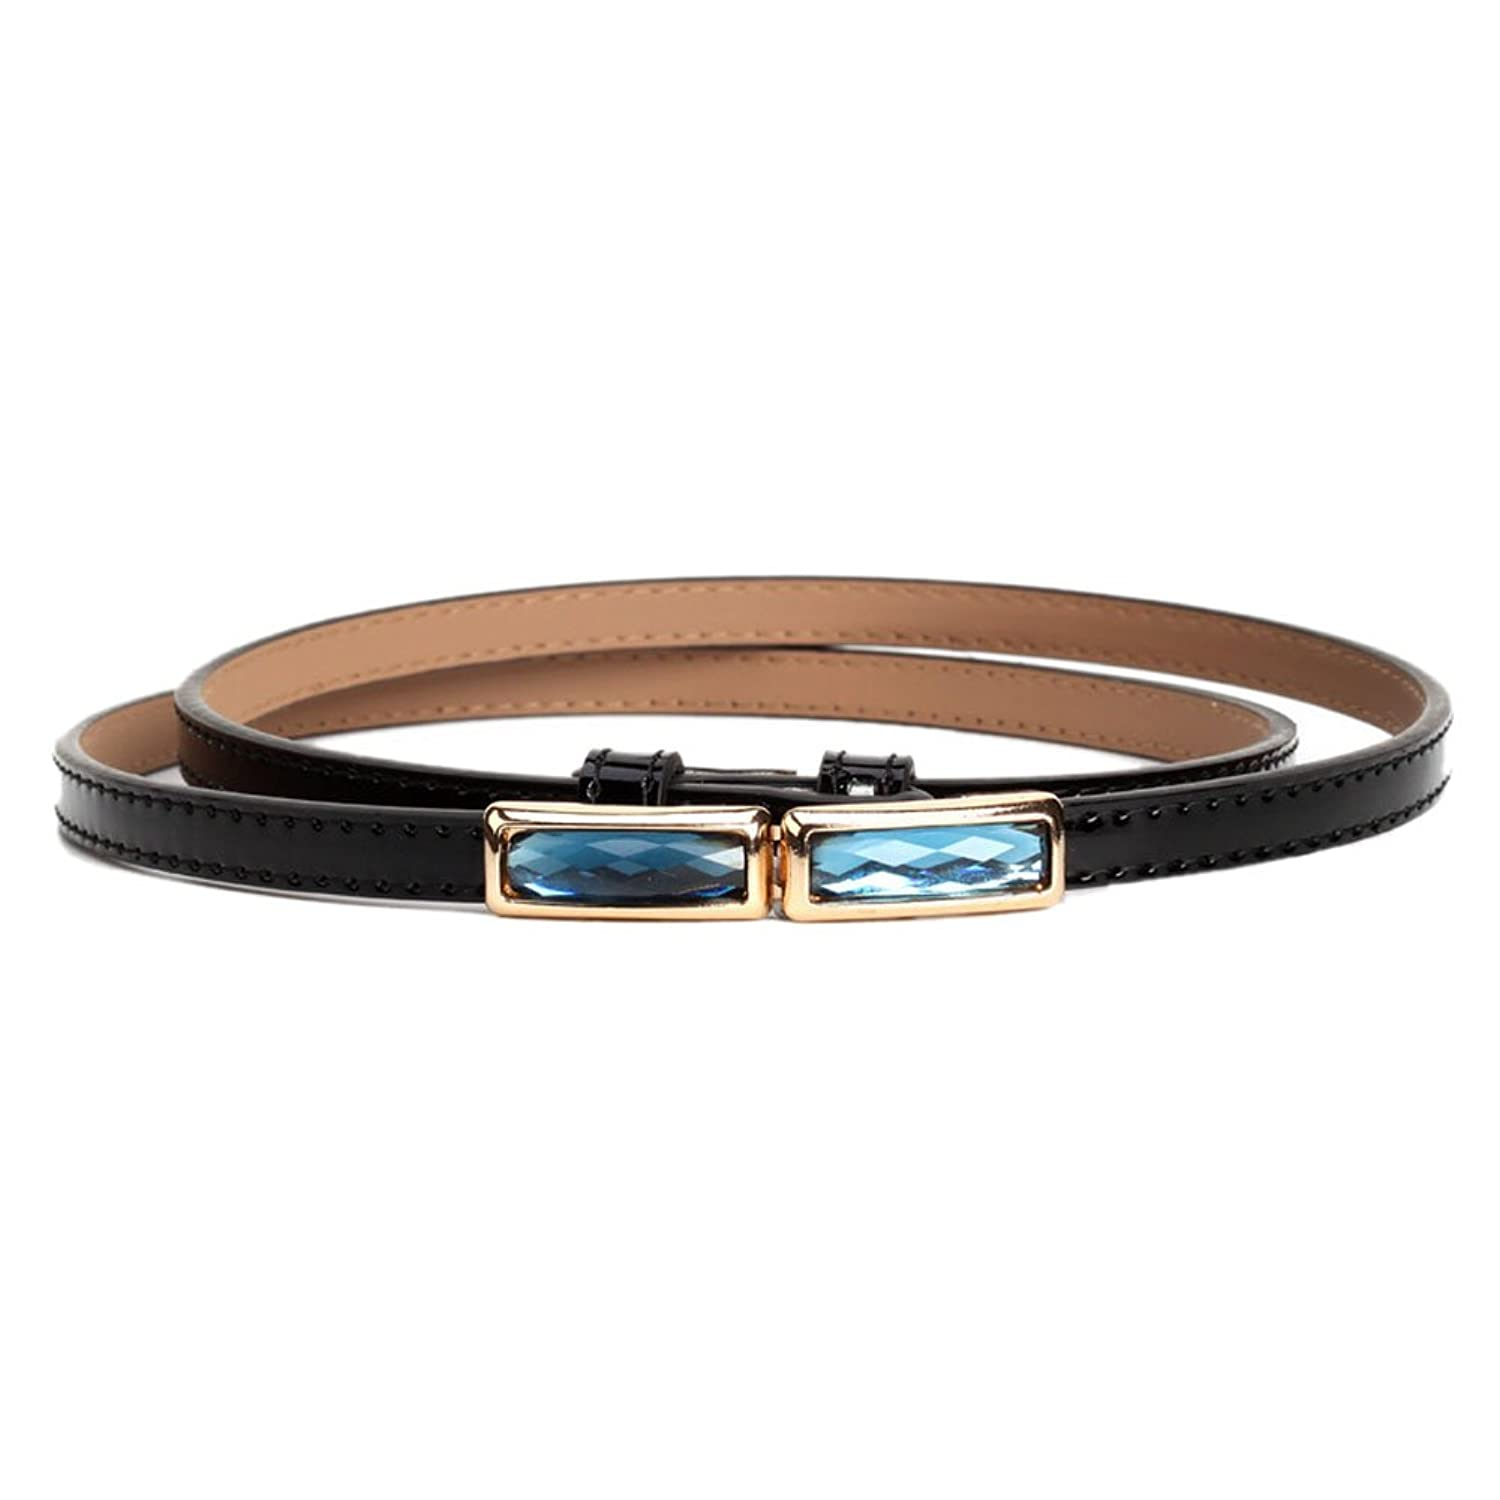 Mlotus Metal Accents Faux Leather Womens Fashion Skinny Waist Belt for Dress